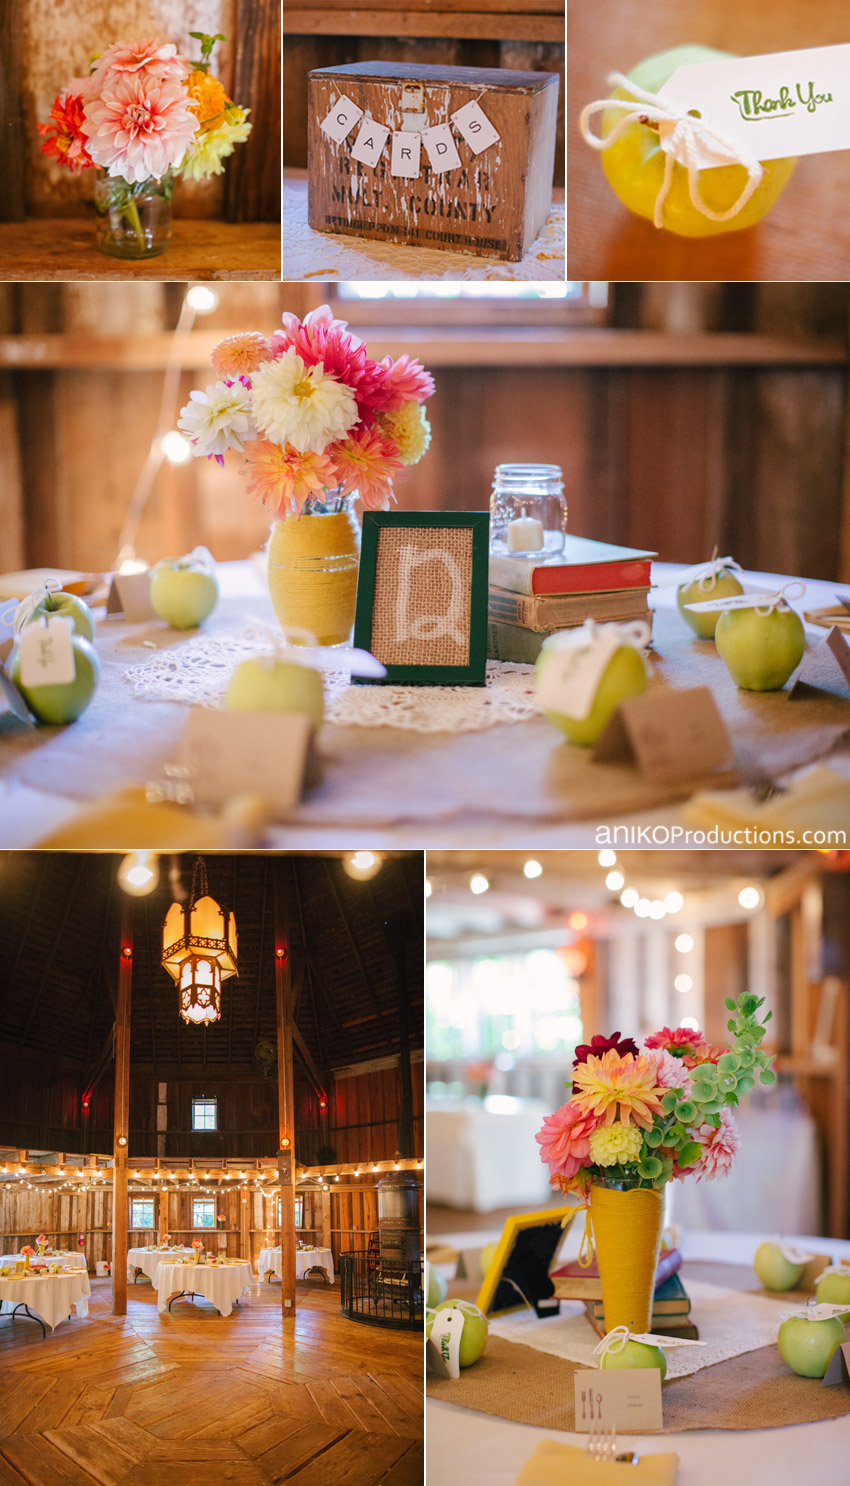 cornelius-pass-roadhouse-hillsboro-oregon-wedding-reception-decor2